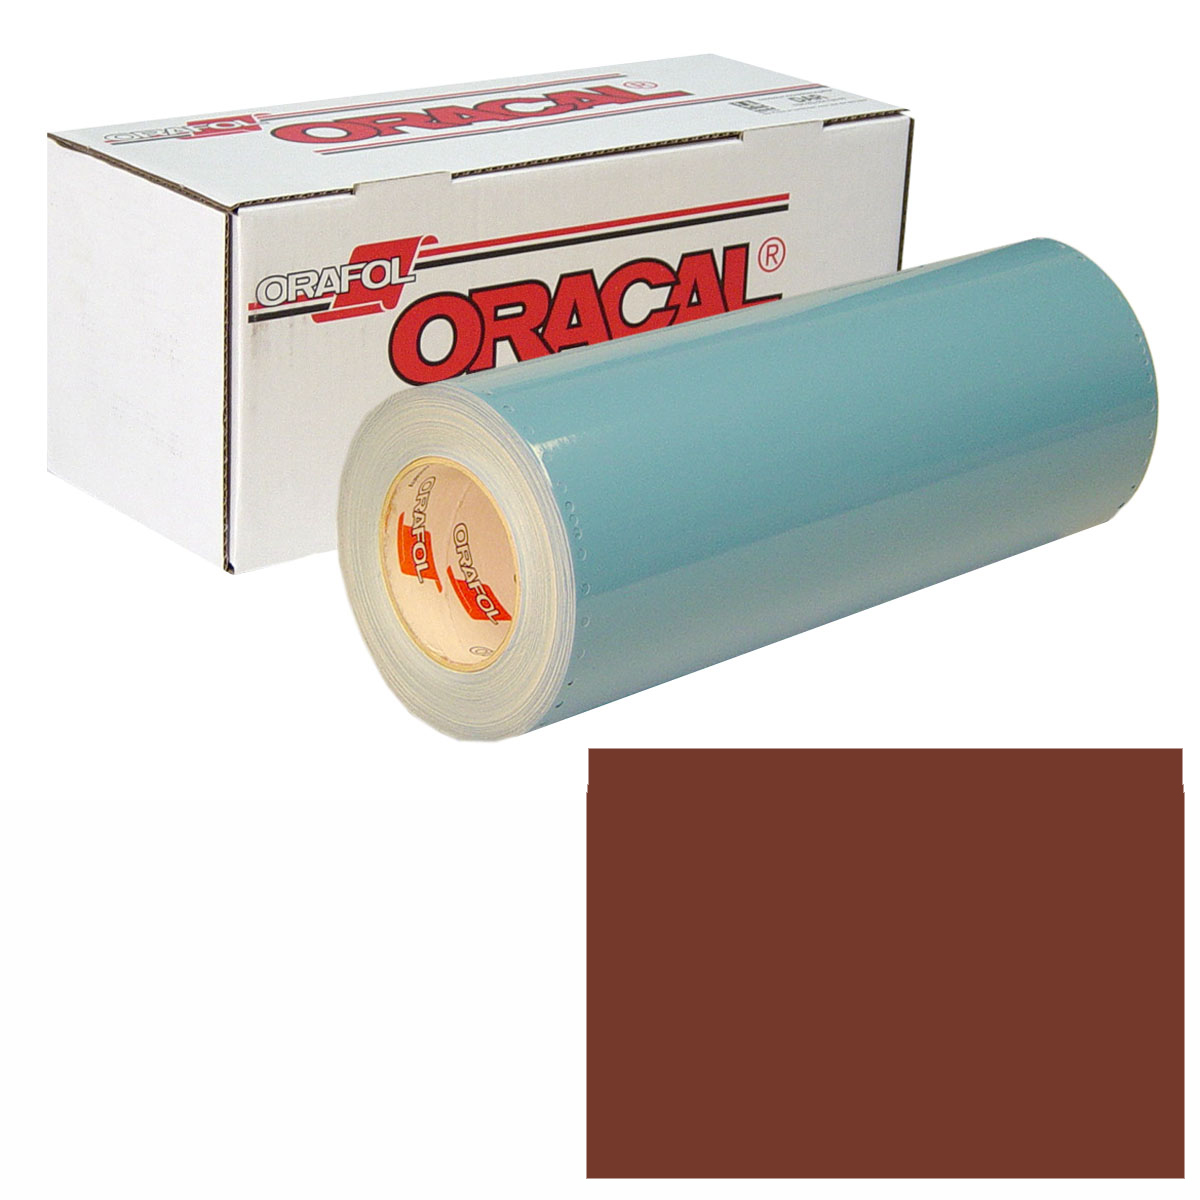 ORACAL 951 Unp 24in X 10yd 079 Red Brown